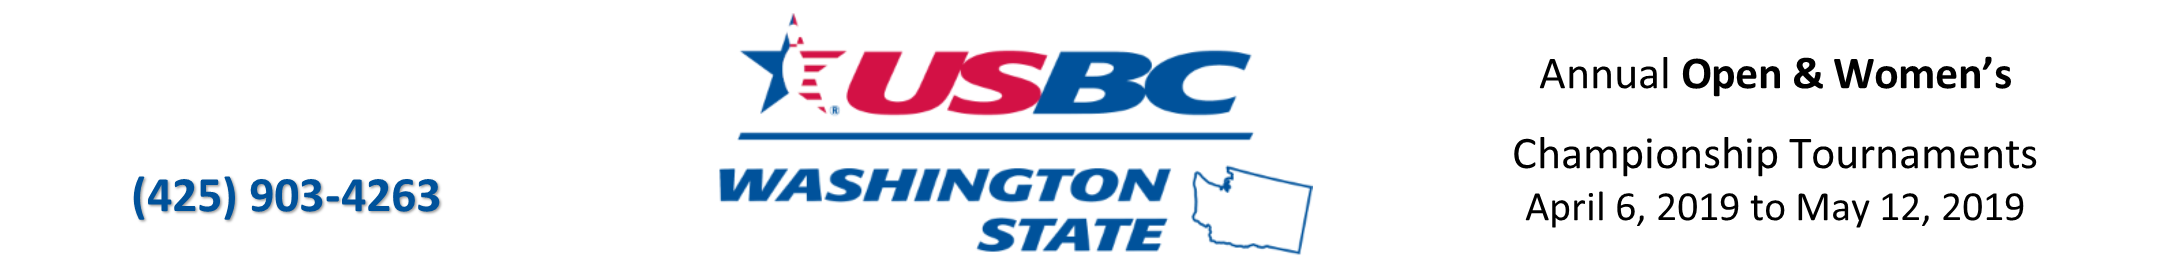 Welcome to the Washington State USBC Website.